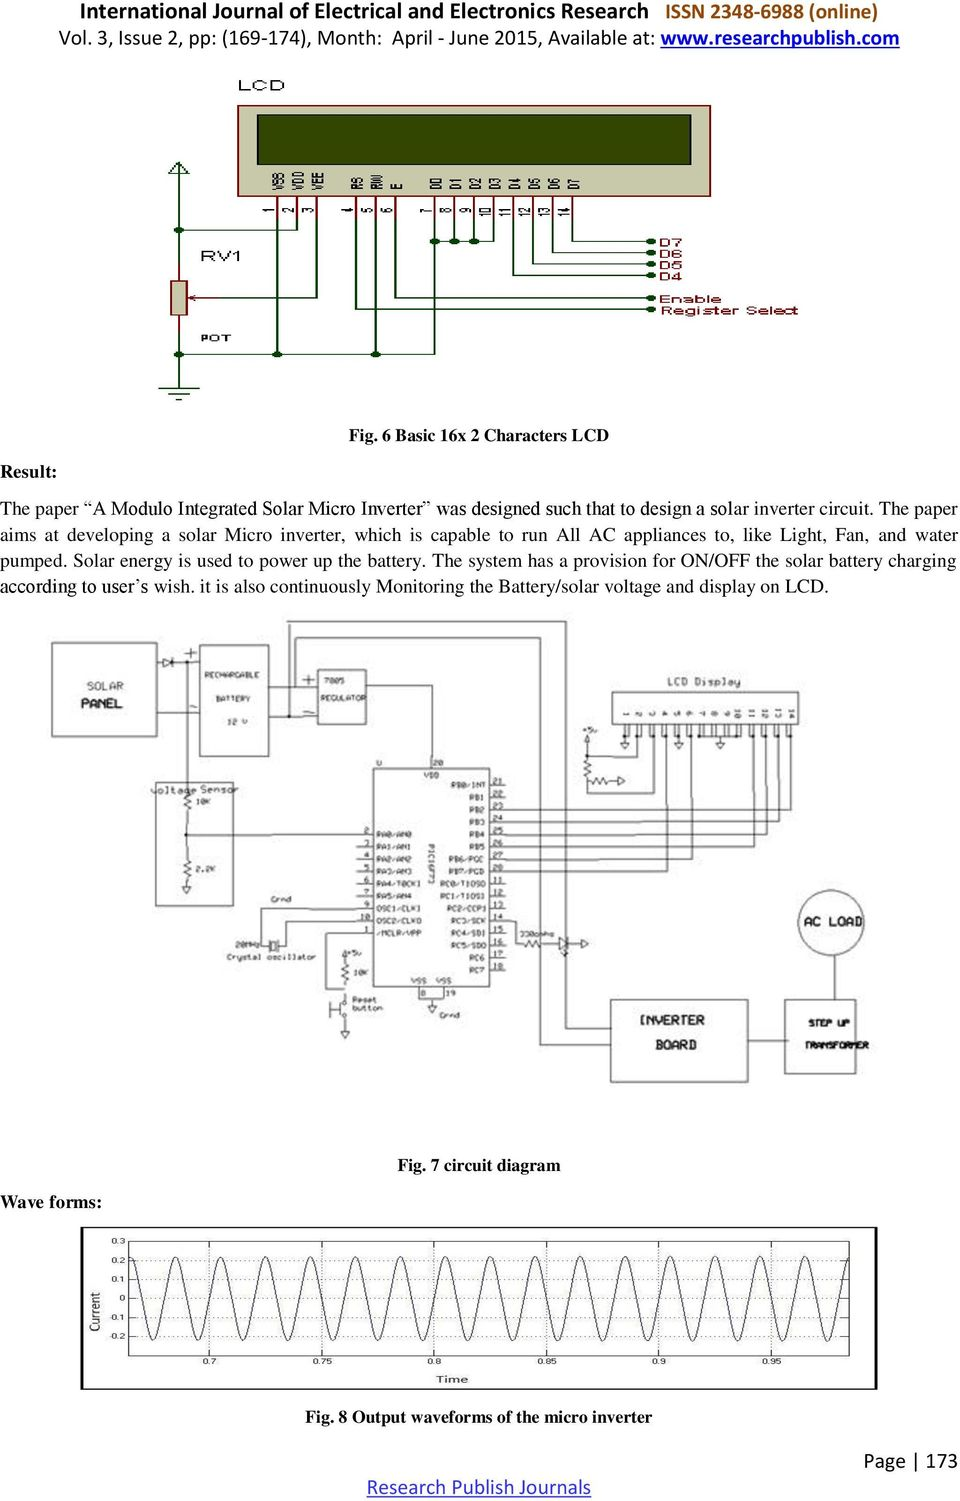 A Module Integrated Isolated Solar Micro Inverter Pdf Advanced Tutorials Battery Wiring Diagrams For Energy Systems The Paper Aims At Developing Which Is Capable To Run All